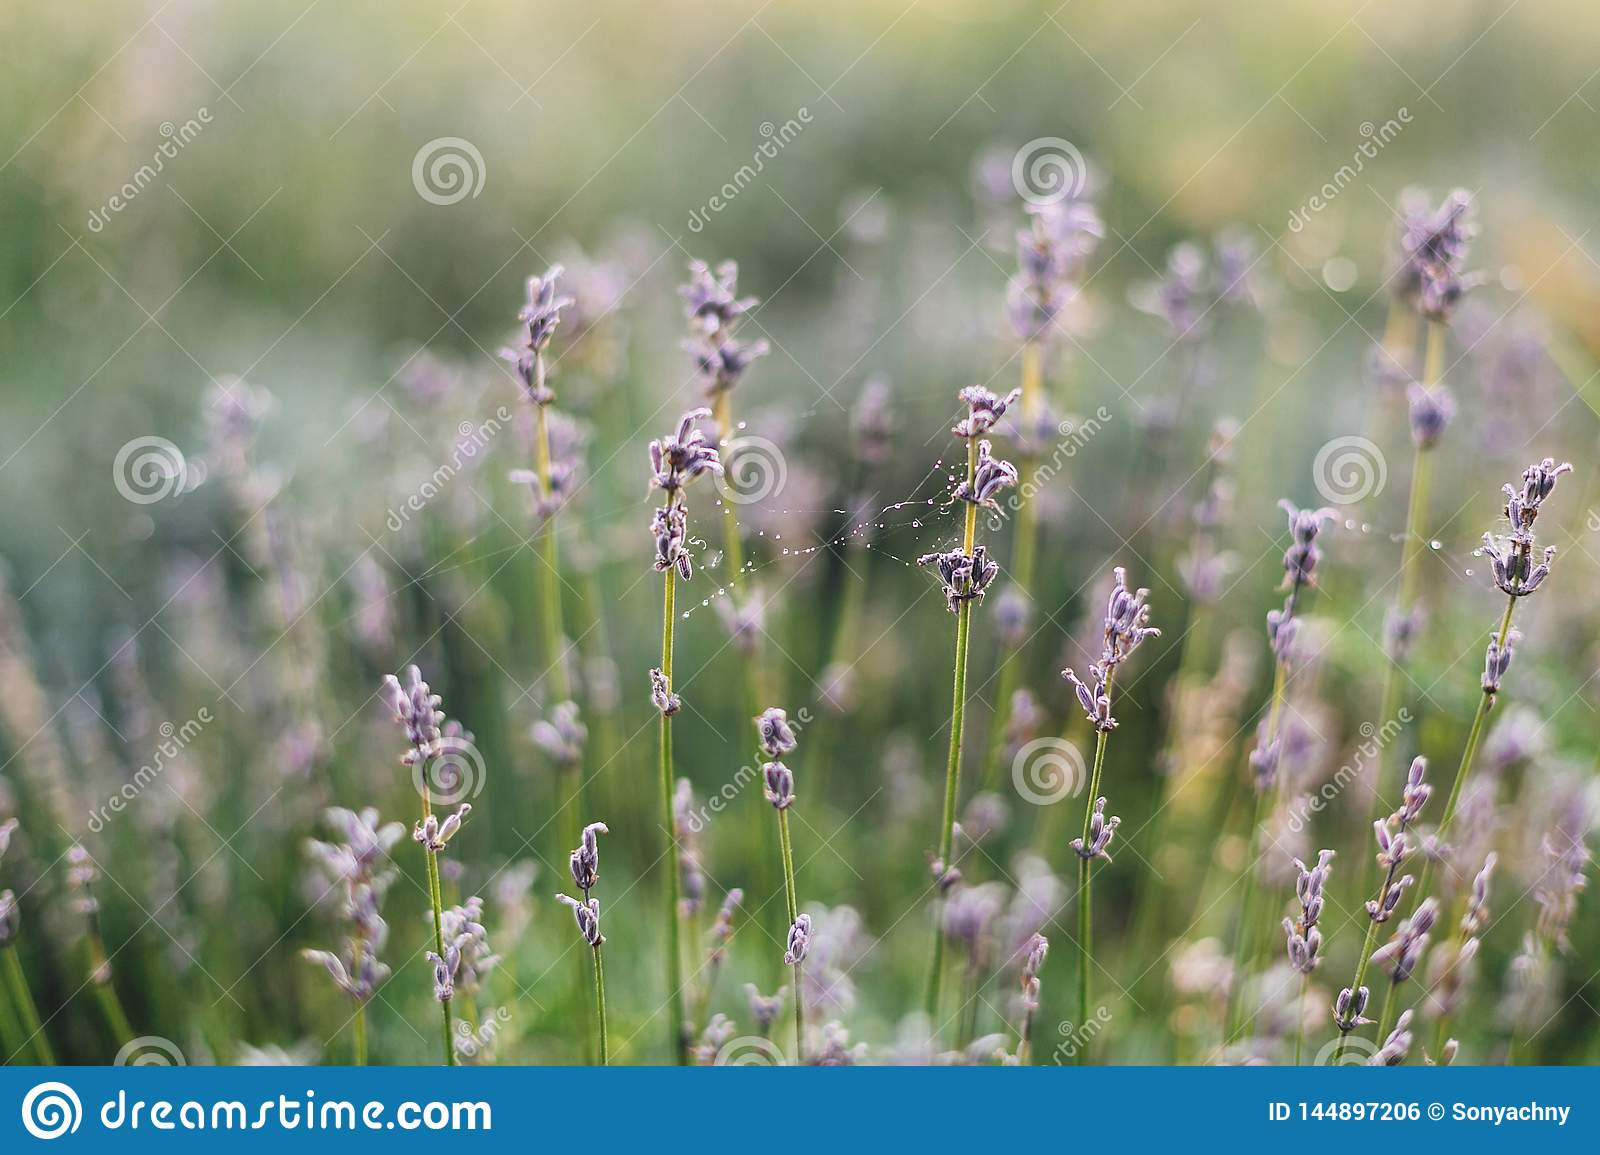 Beautiful Lavender Flowers With Morning Dew On Spider Web